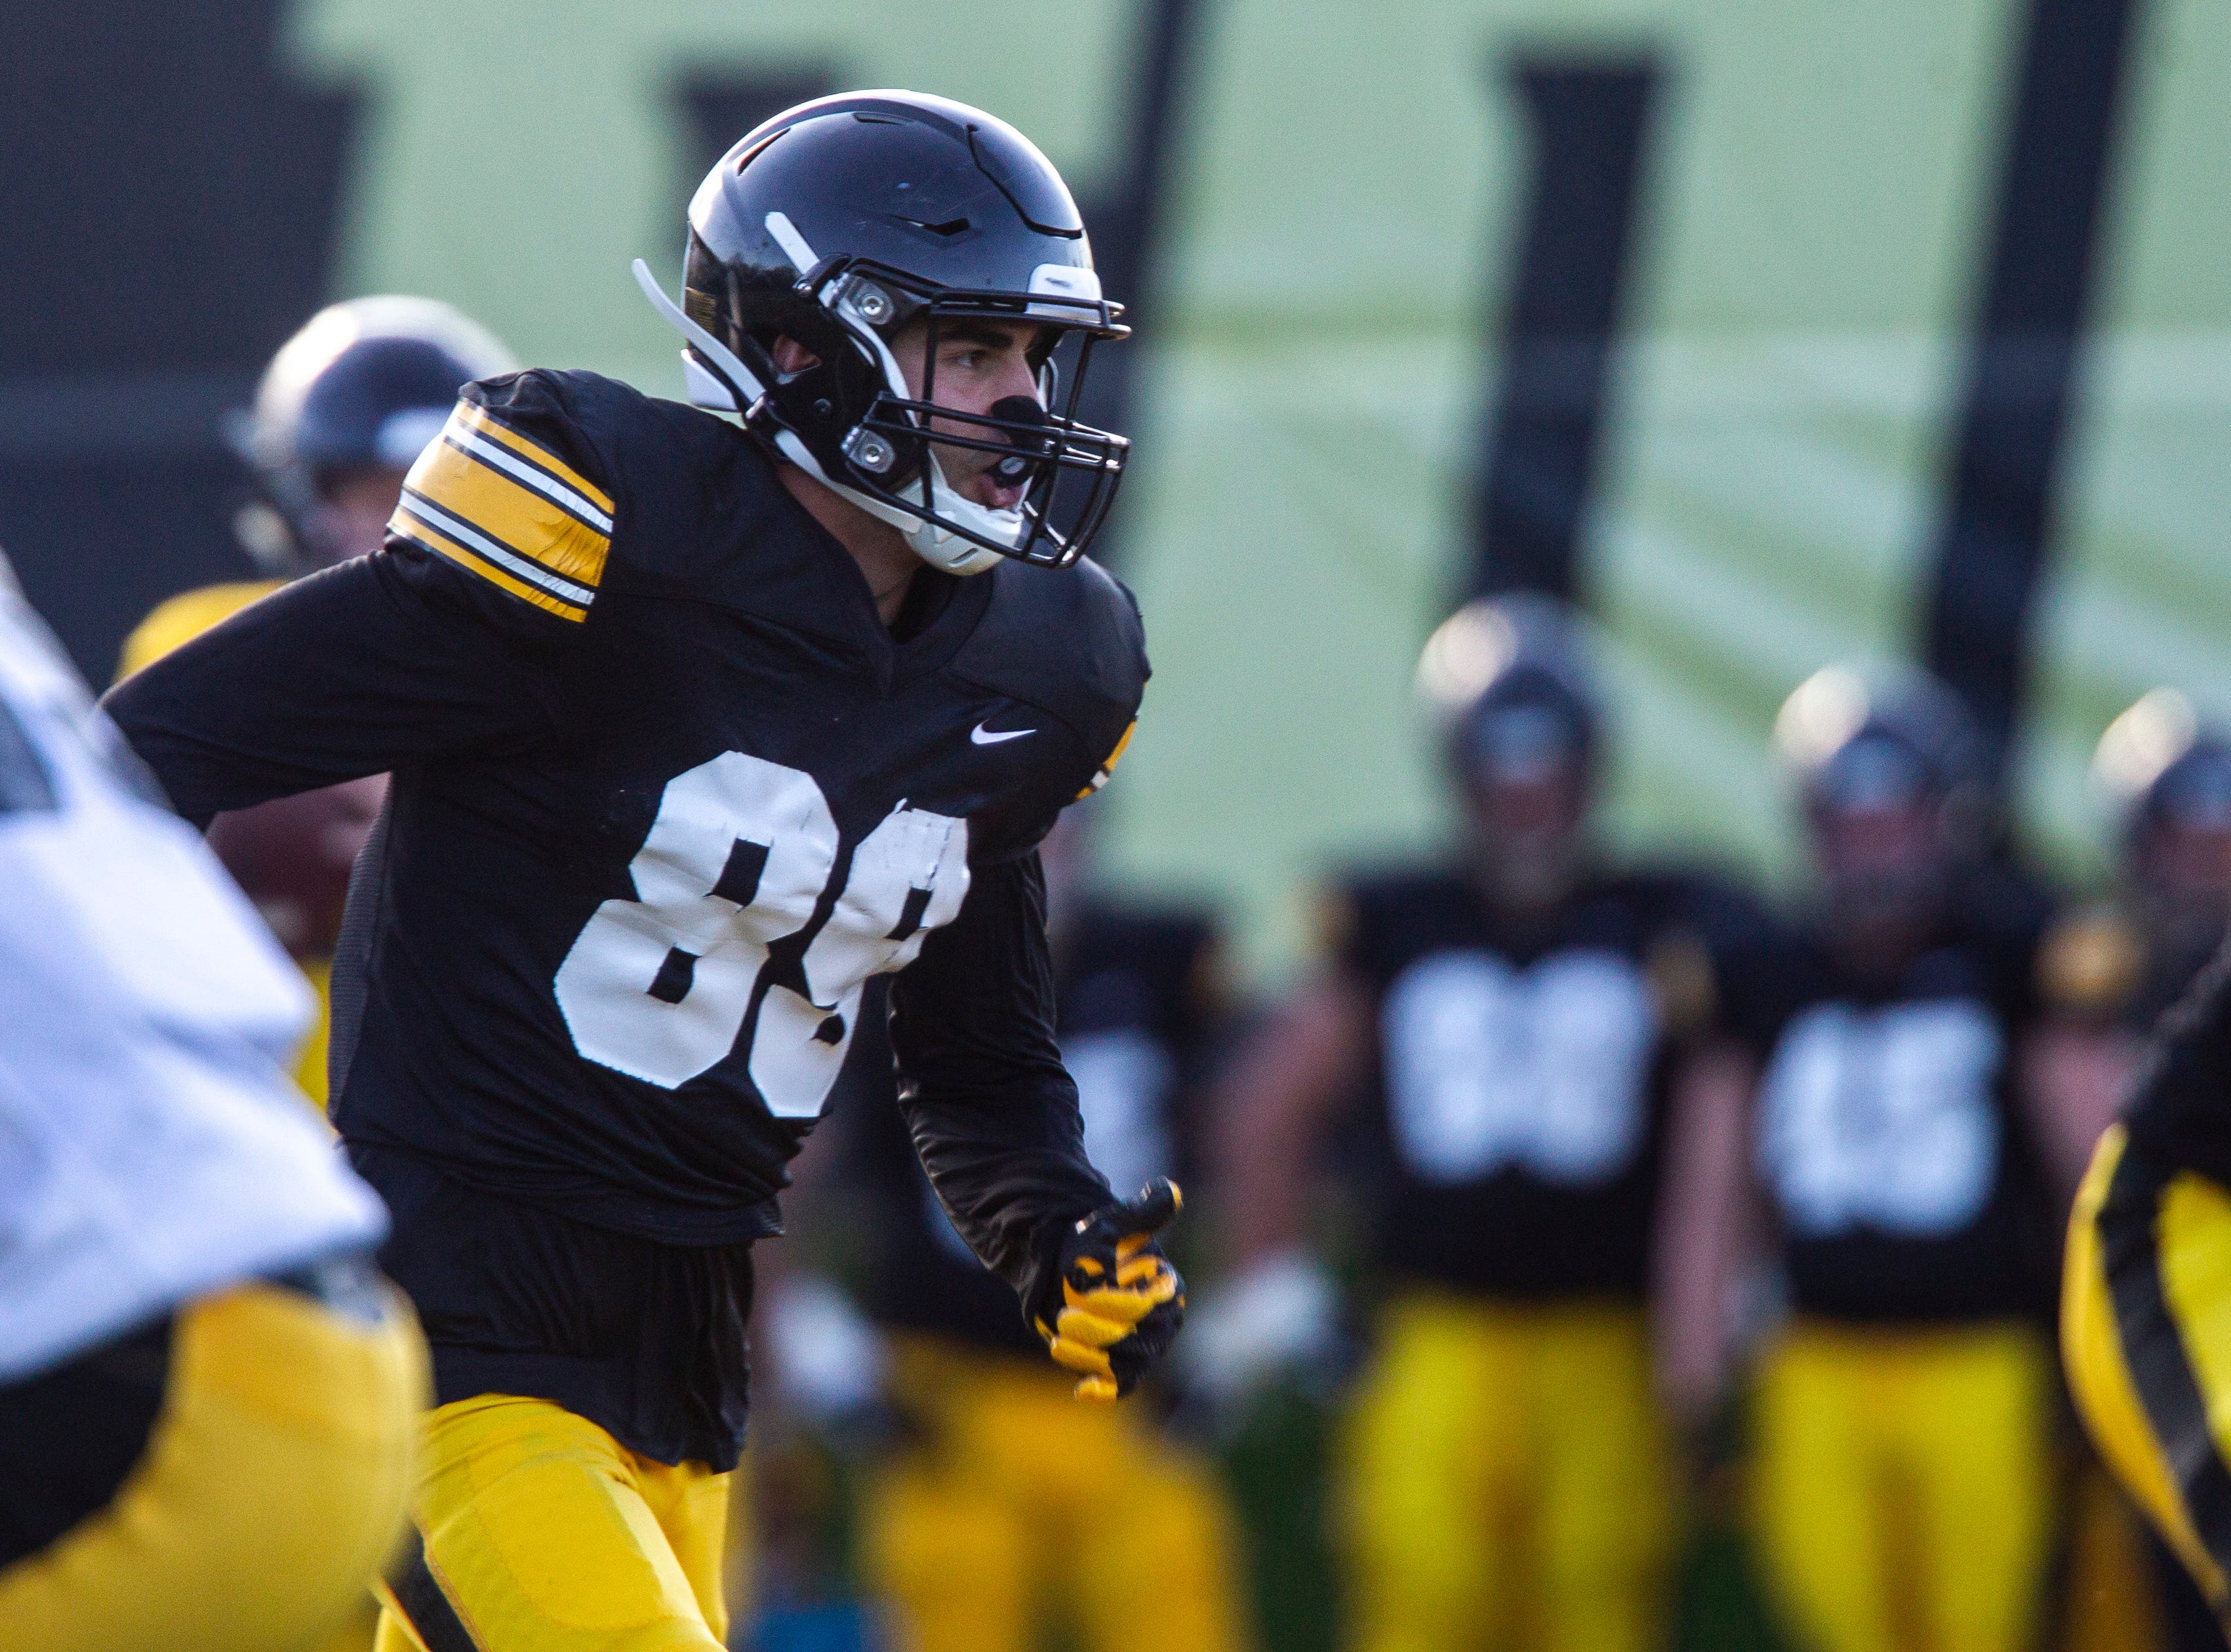 Iowa wide receiver Nico Ragaini (89) runs a route during the final spring football practice, Friday, April 26, 2019, at the University of Iowa outdoor practice facility in Iowa City, Iowa.